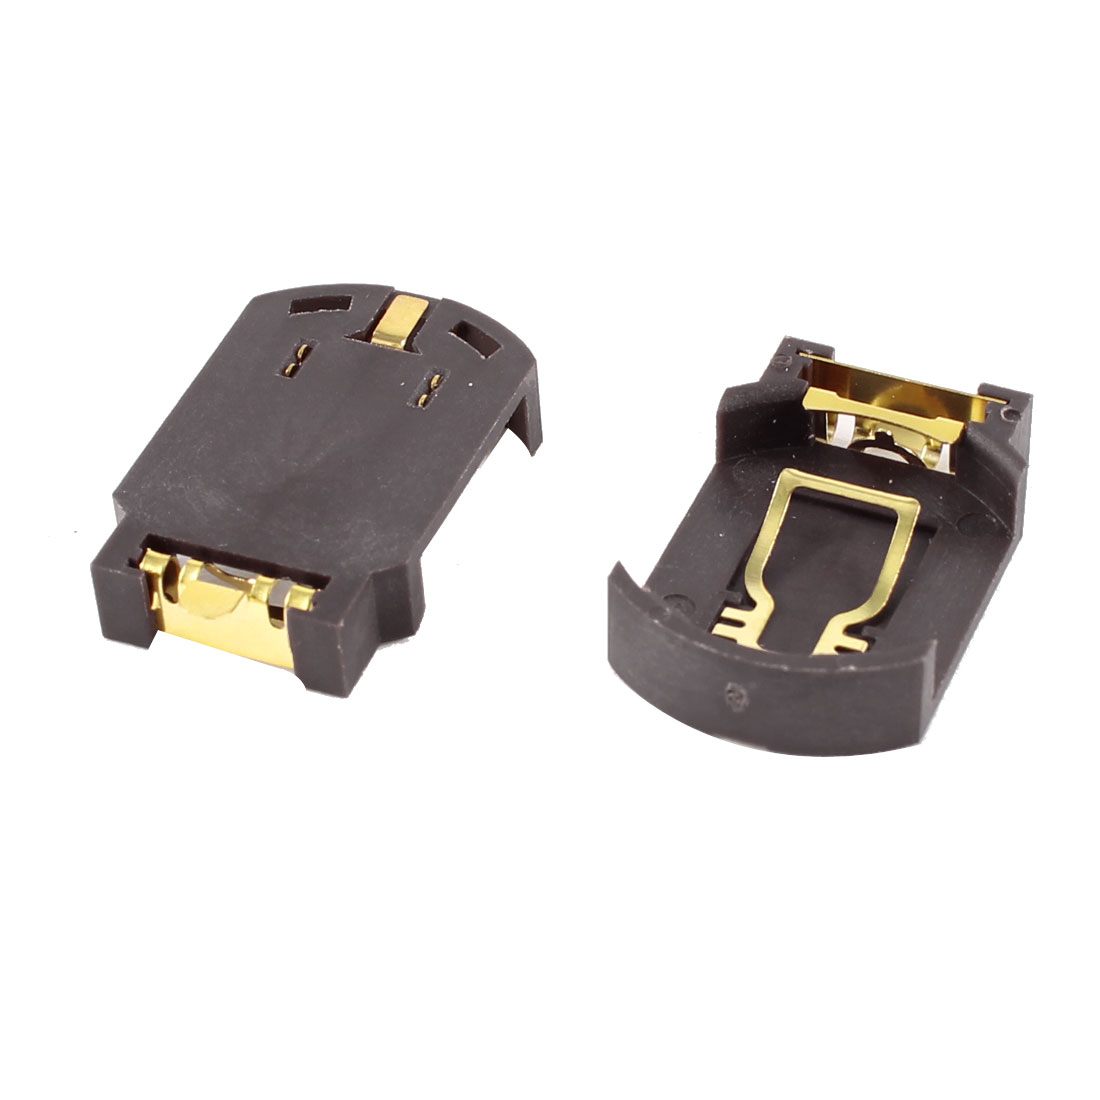 2 Pcs CR2032 2032 2025 Cell Button Battery Socket Holder Case SMD SMT Brown